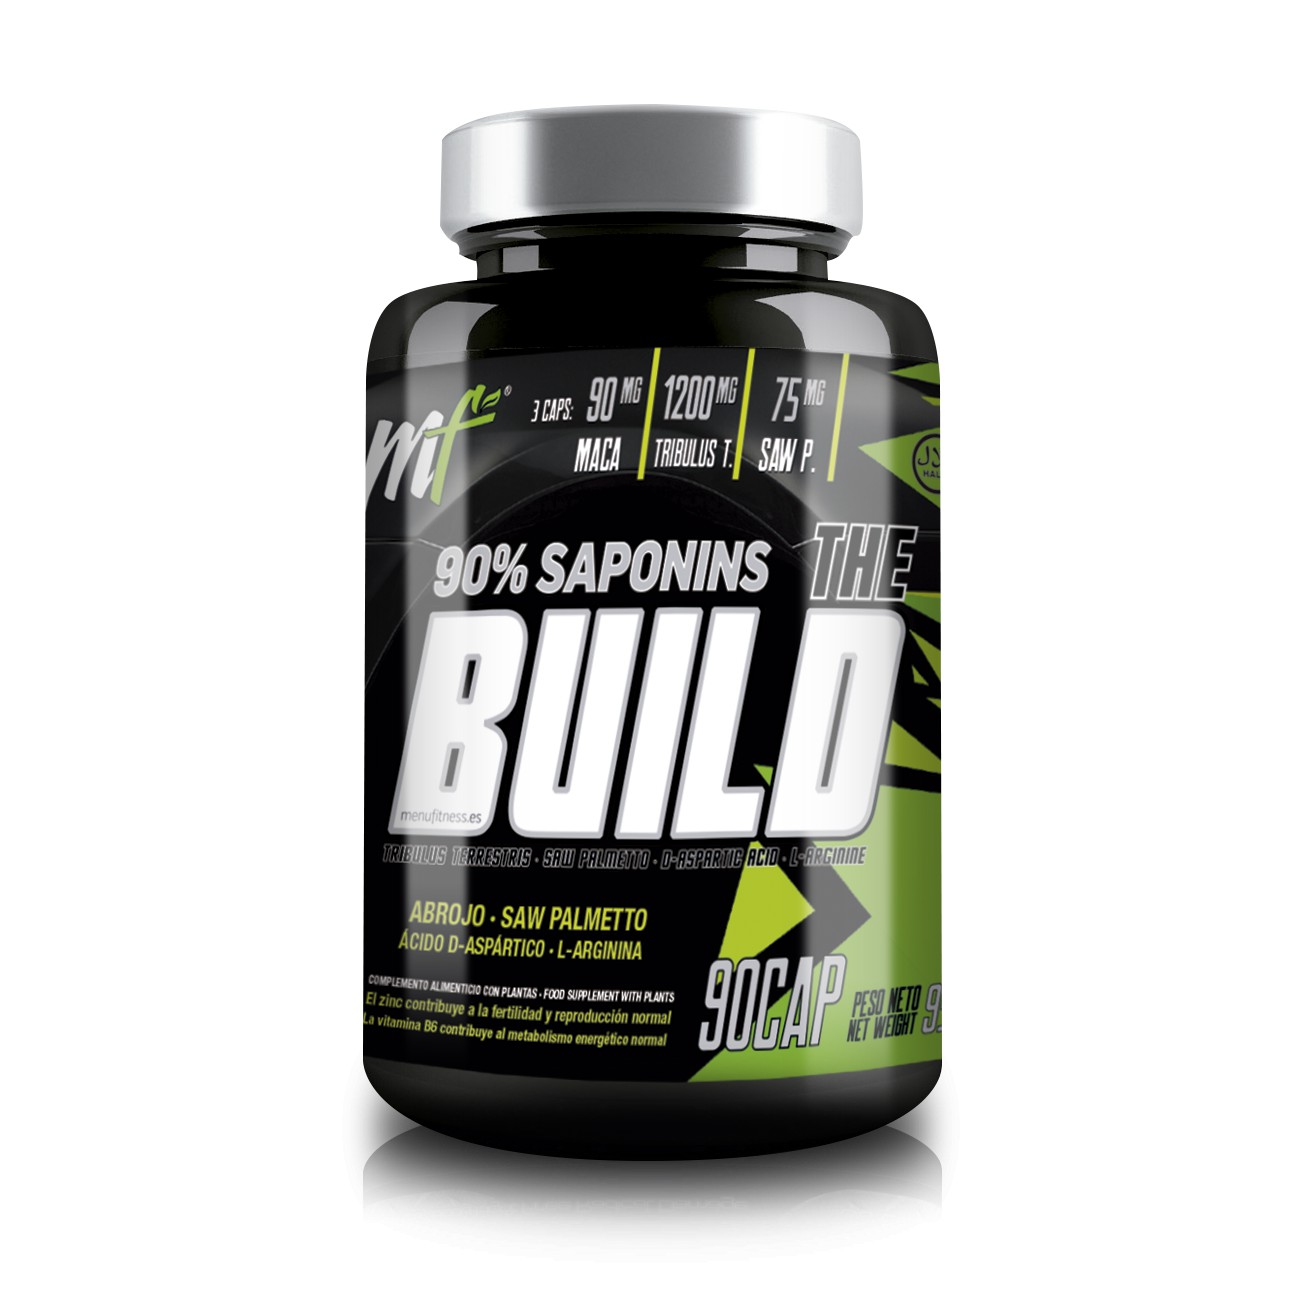 THE BUILD TESTOSTERONE BOOSTER PROHORMONALES Menu Fitness